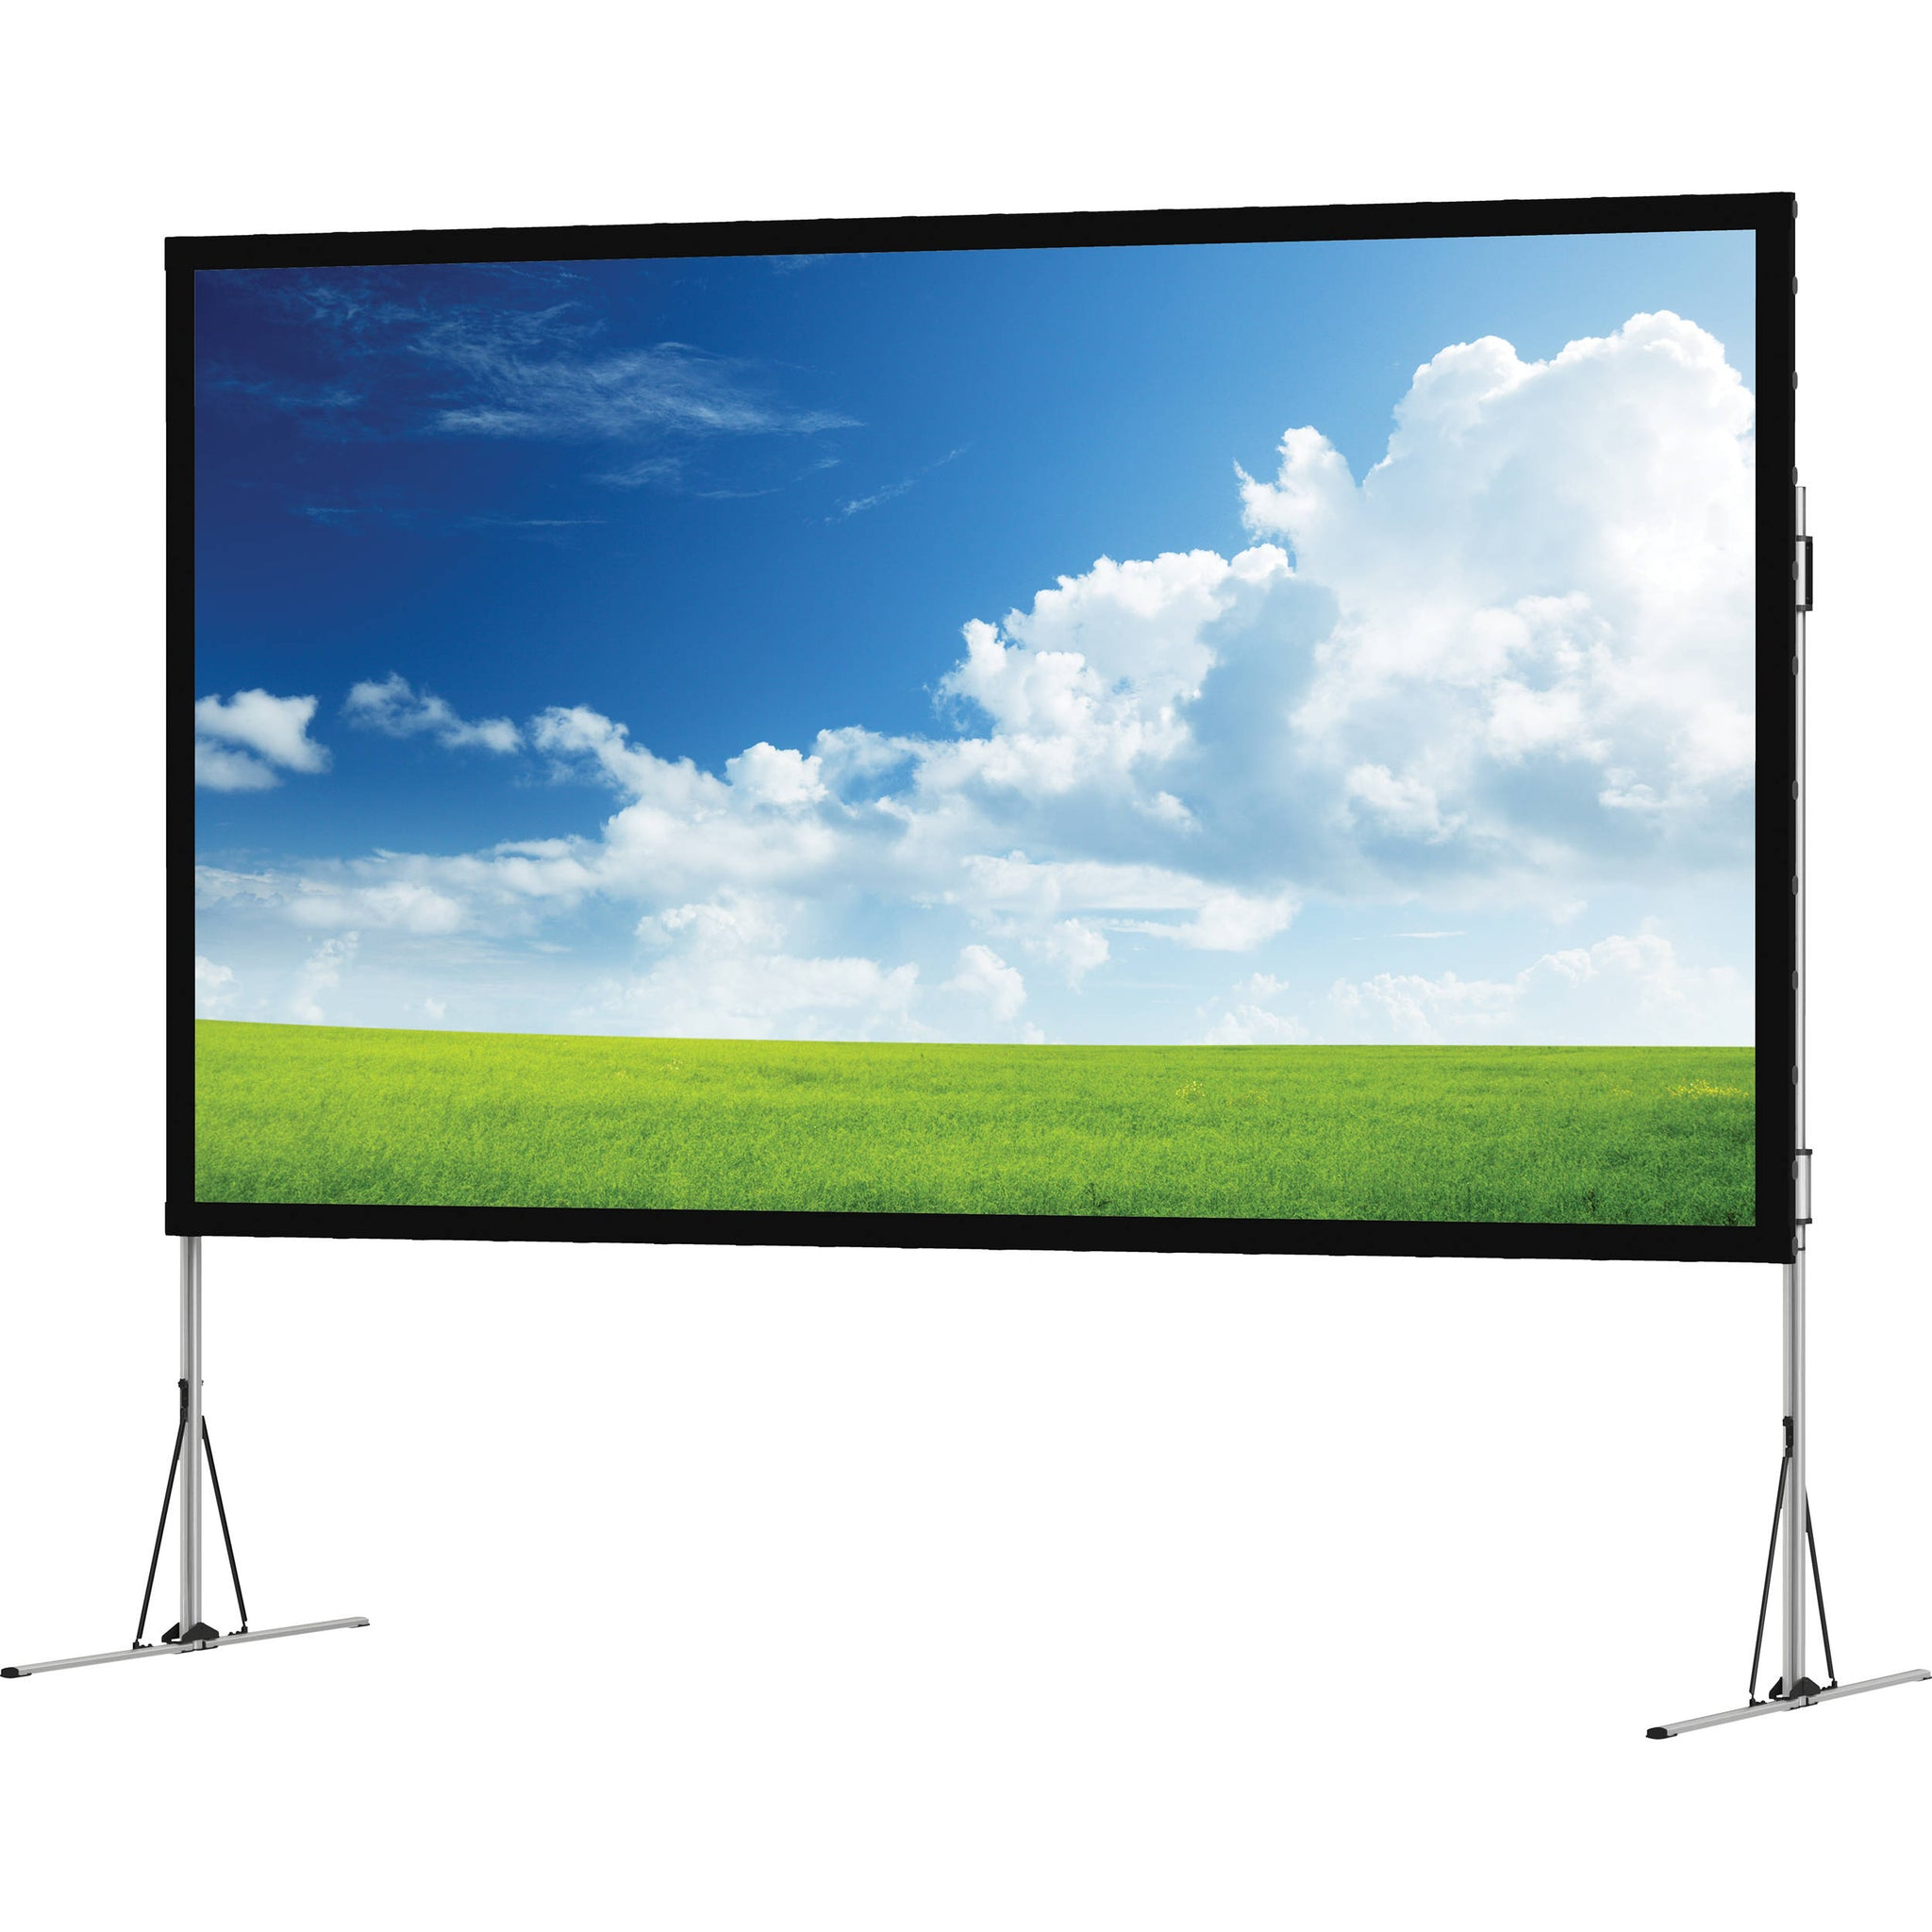 "Avico JK 159"" 352 x 198 Fast Fold Front and Rear Projection Screen, 16:9 JK-FF9 159FPRP"